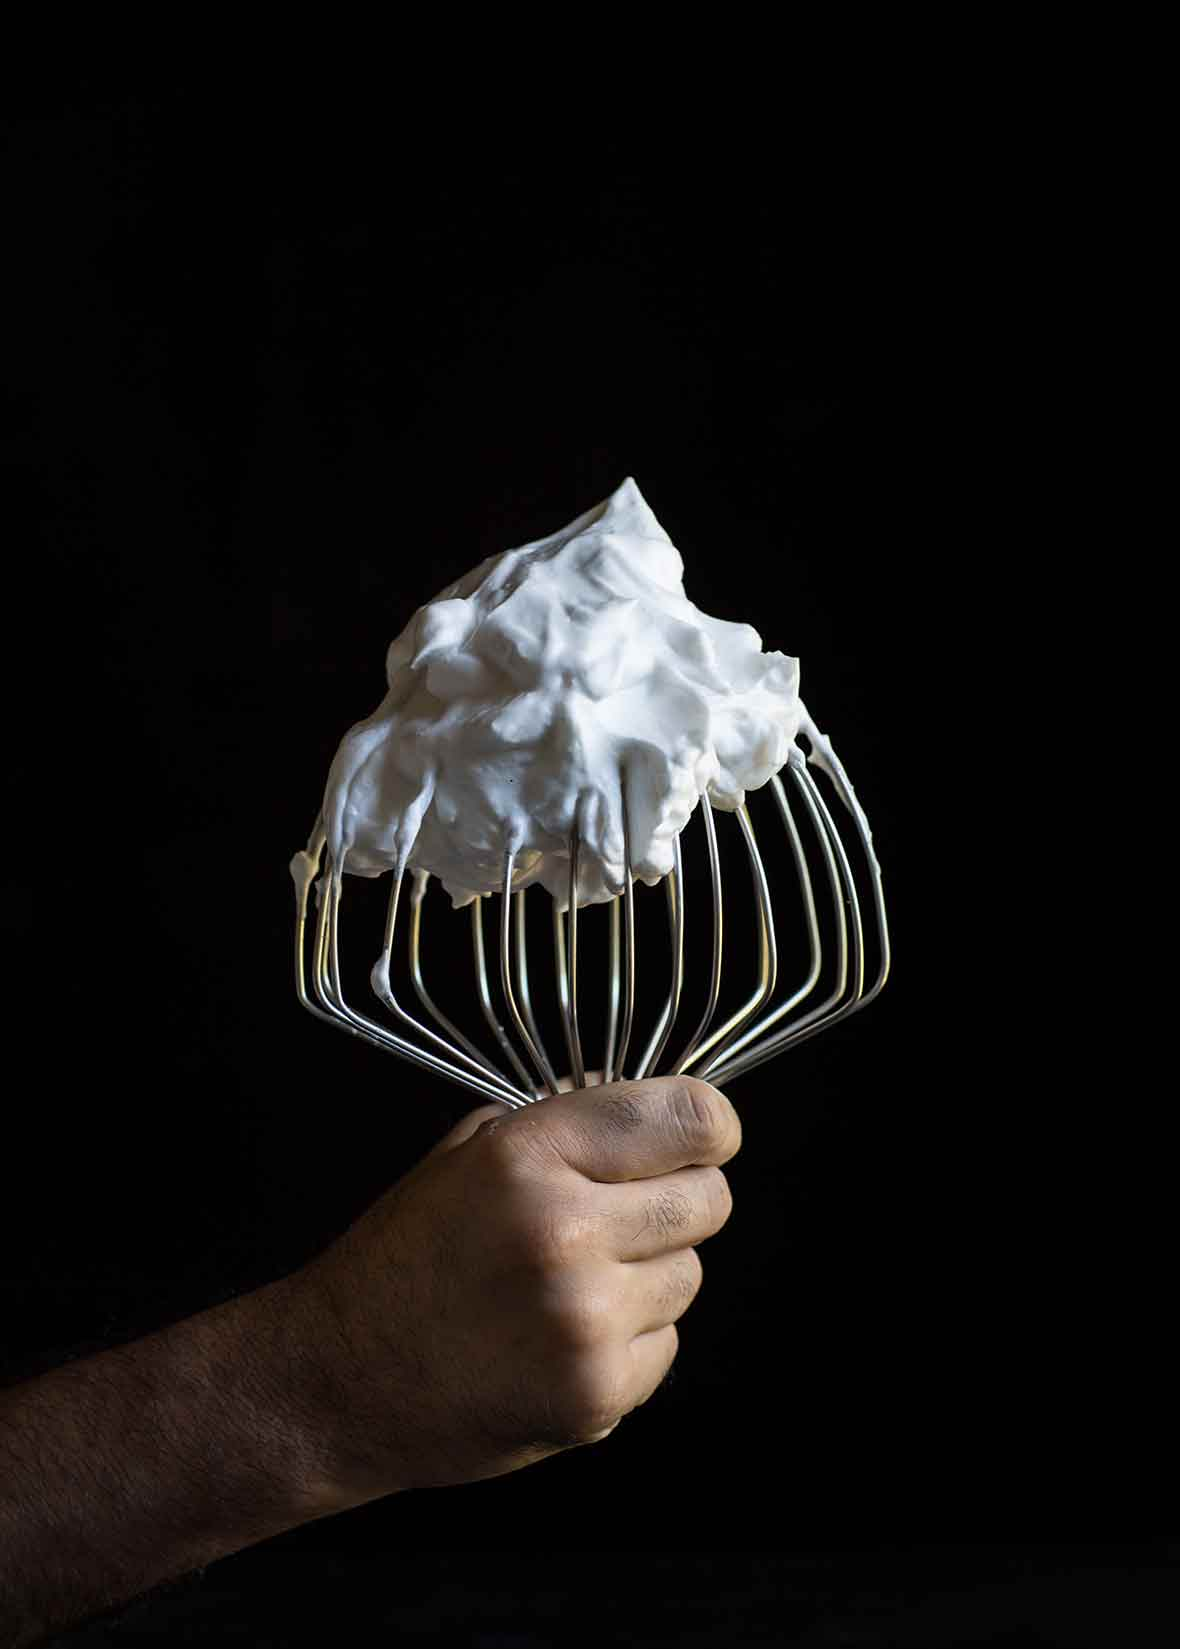 A hand holding a stand-mixer whisk covered in vegan meringue